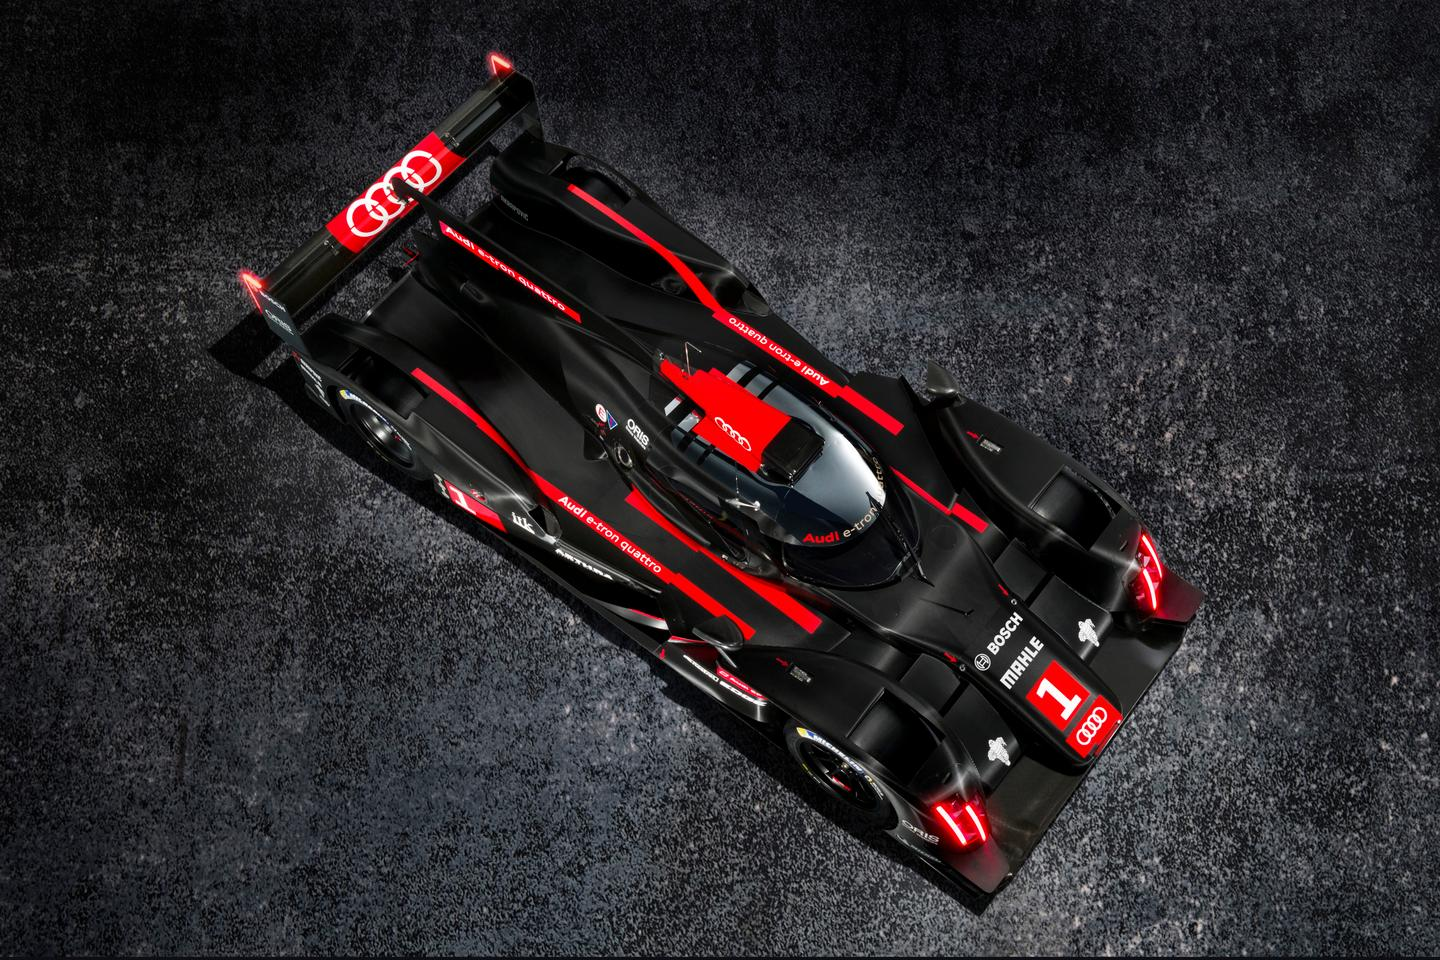 Until this year rules set by the FIA allowed Audi to engage its AWD system only above 75 mph (120 km/h) in a race, for 2014 the rule has been removed